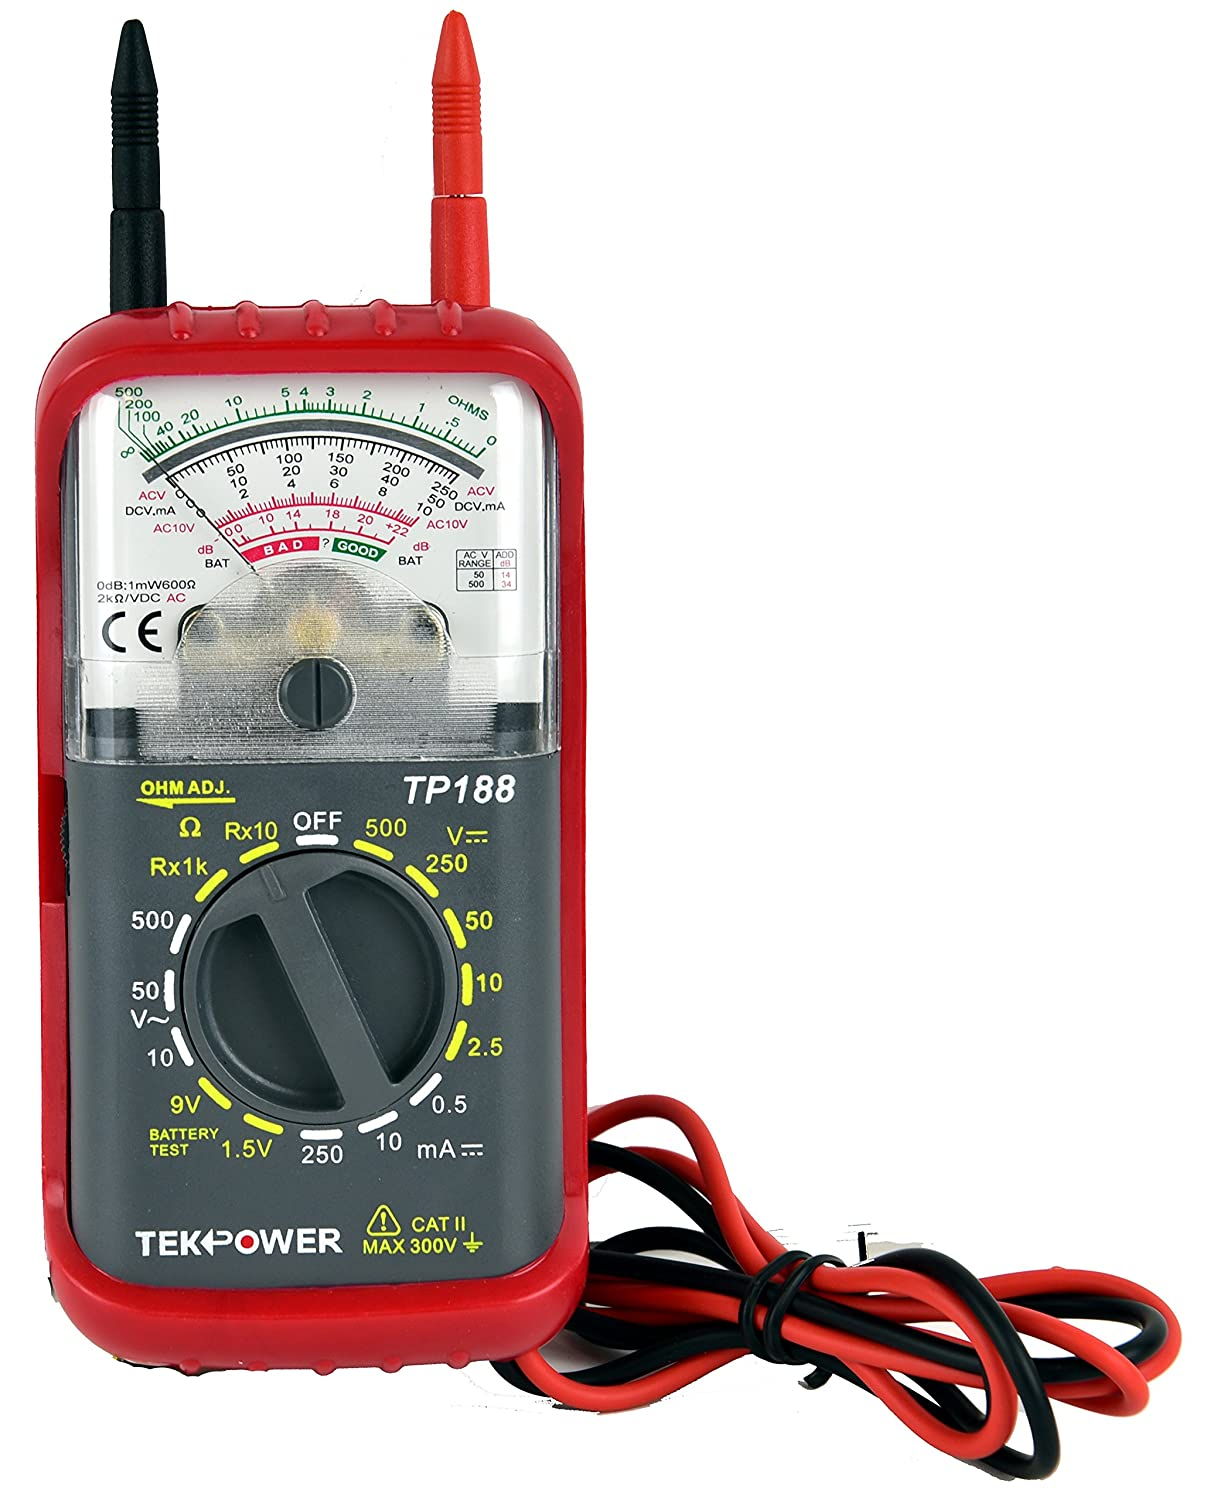 Tekpower Tp188 Pocket Size Analog Multimeter With Built Voltmeter Cr7 Green In Test Leads Home Improvement